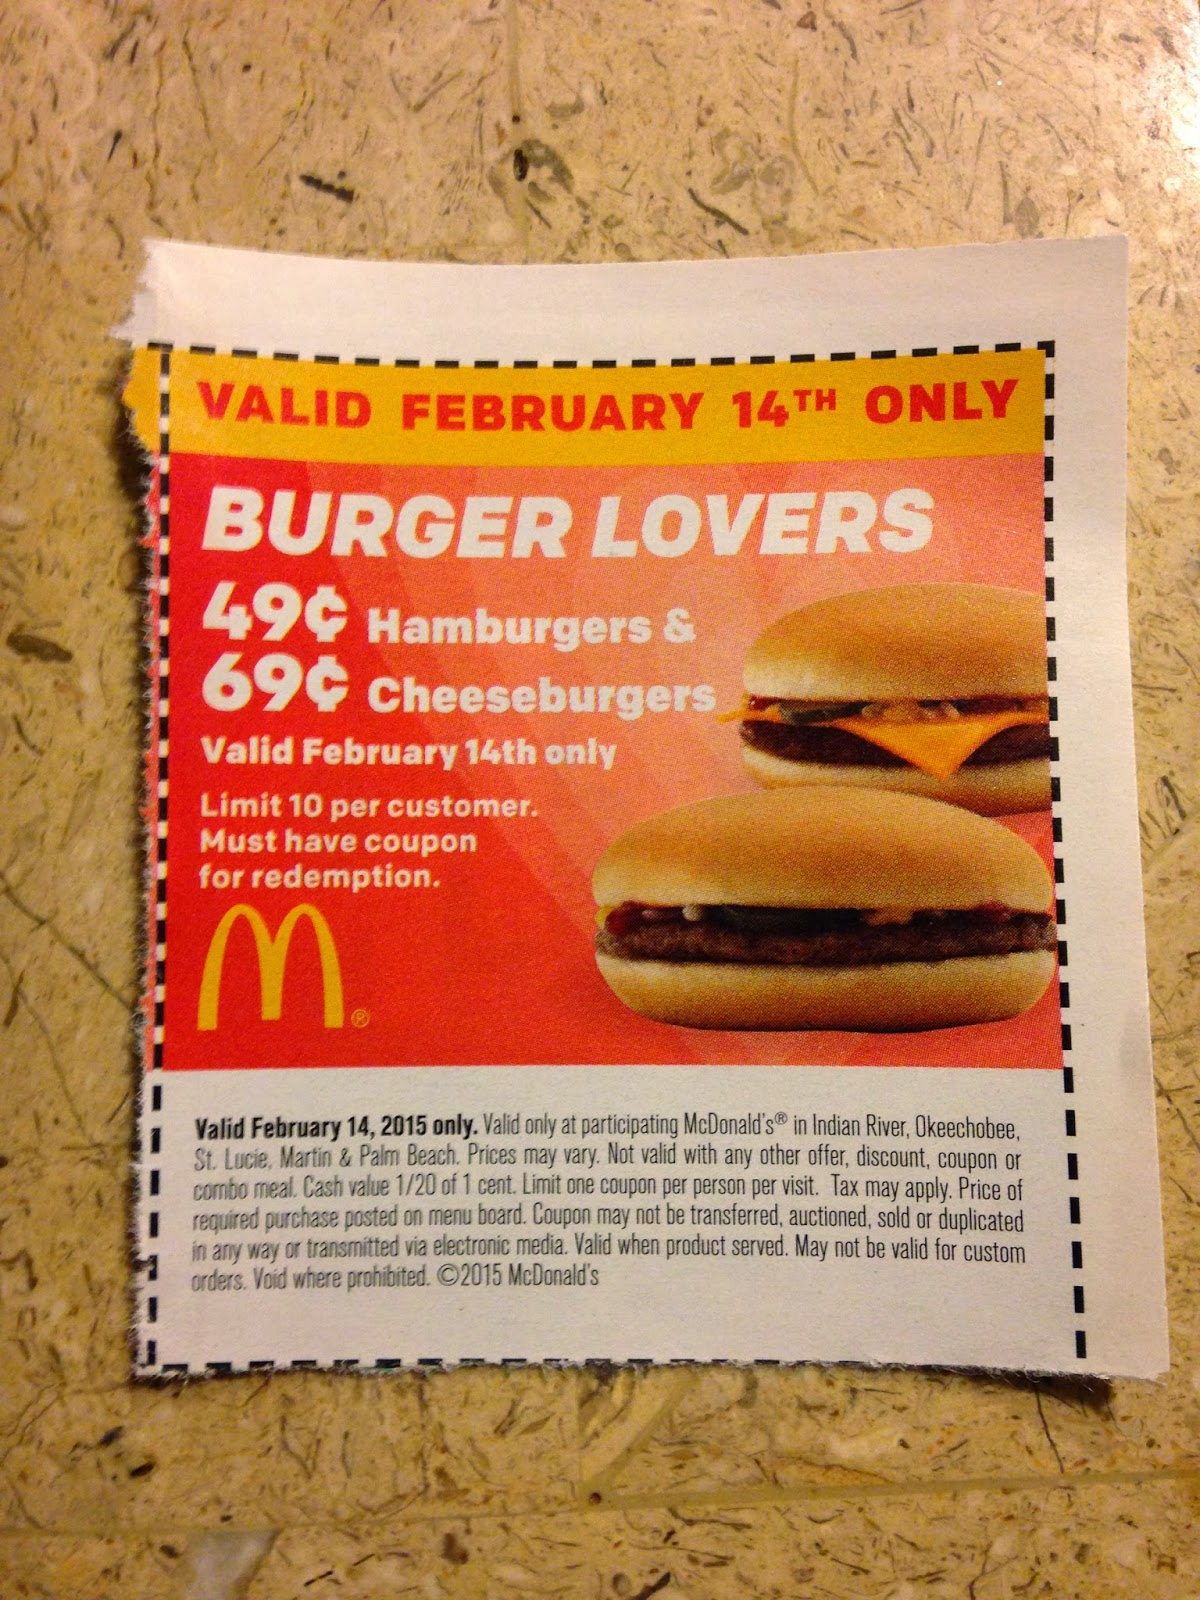 """Valid February 14th only"" ""BURGER LOVERS"" ""49¢ Hamburgers & 69¢ Cheeseburgers"" ""Valid February 14th only"" ""Limit 10 per customer."" ""Must have coupon for redemption."""